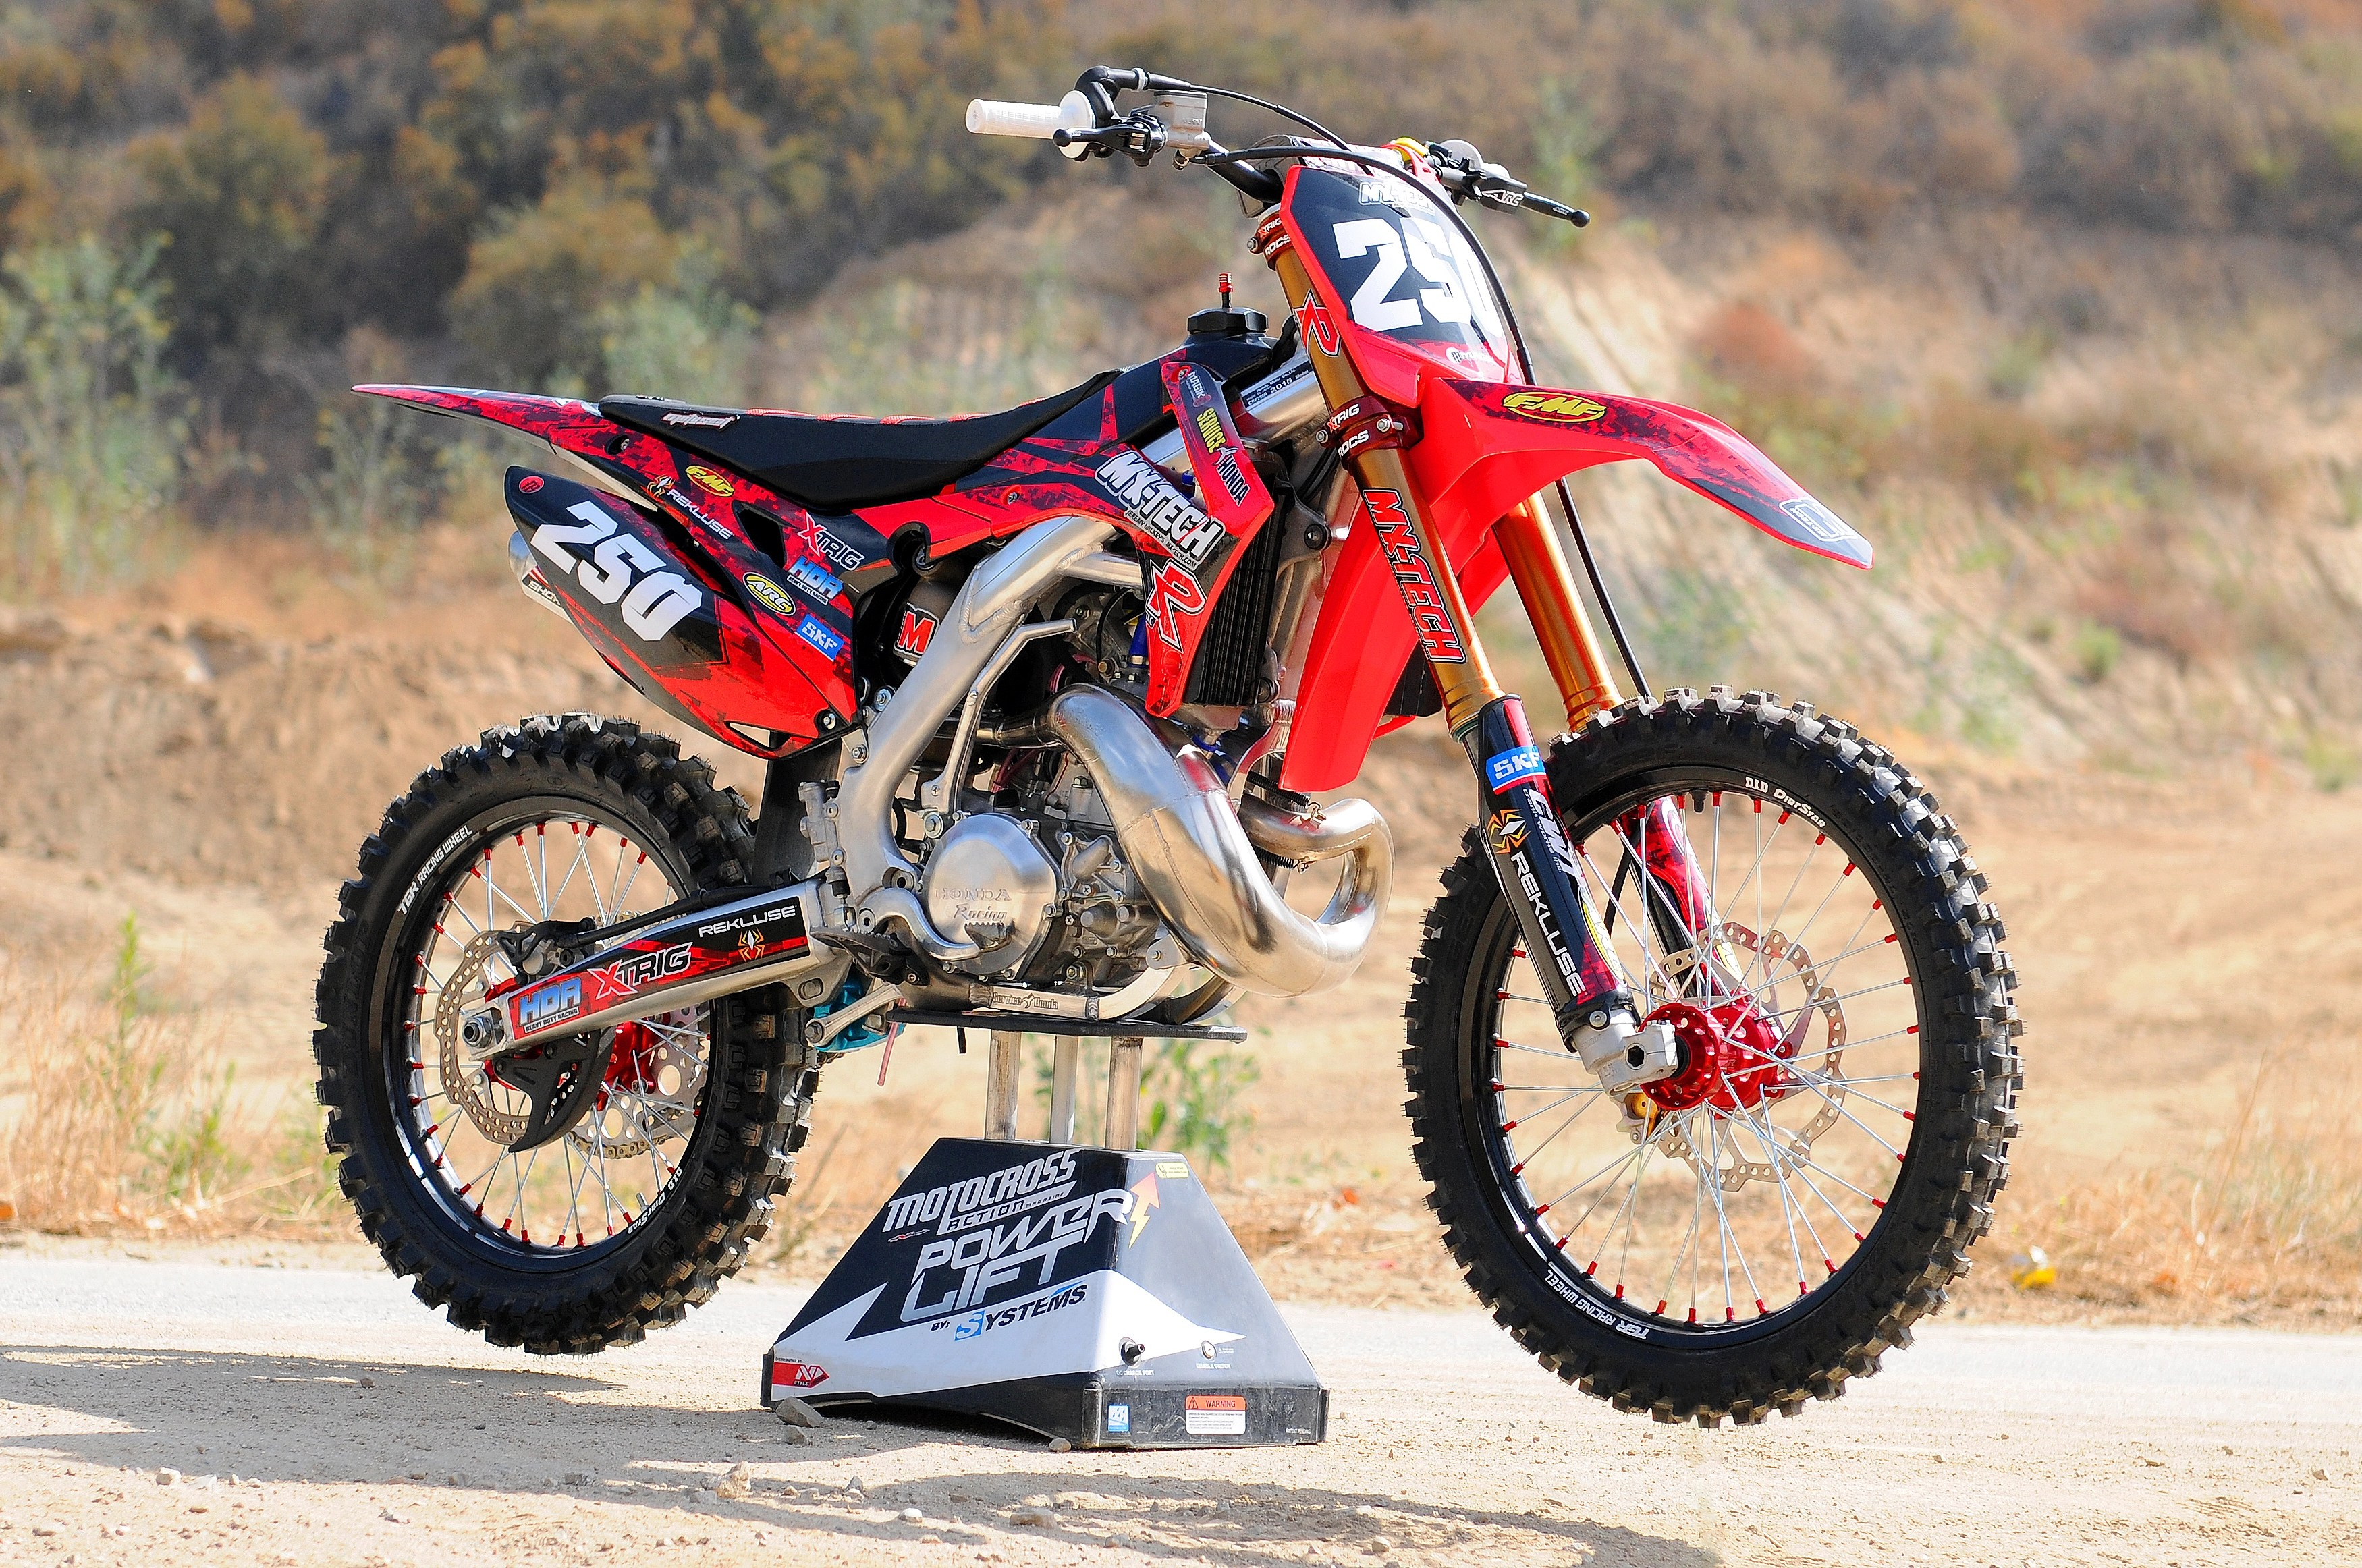 hight resolution of mxt cr250 project bike